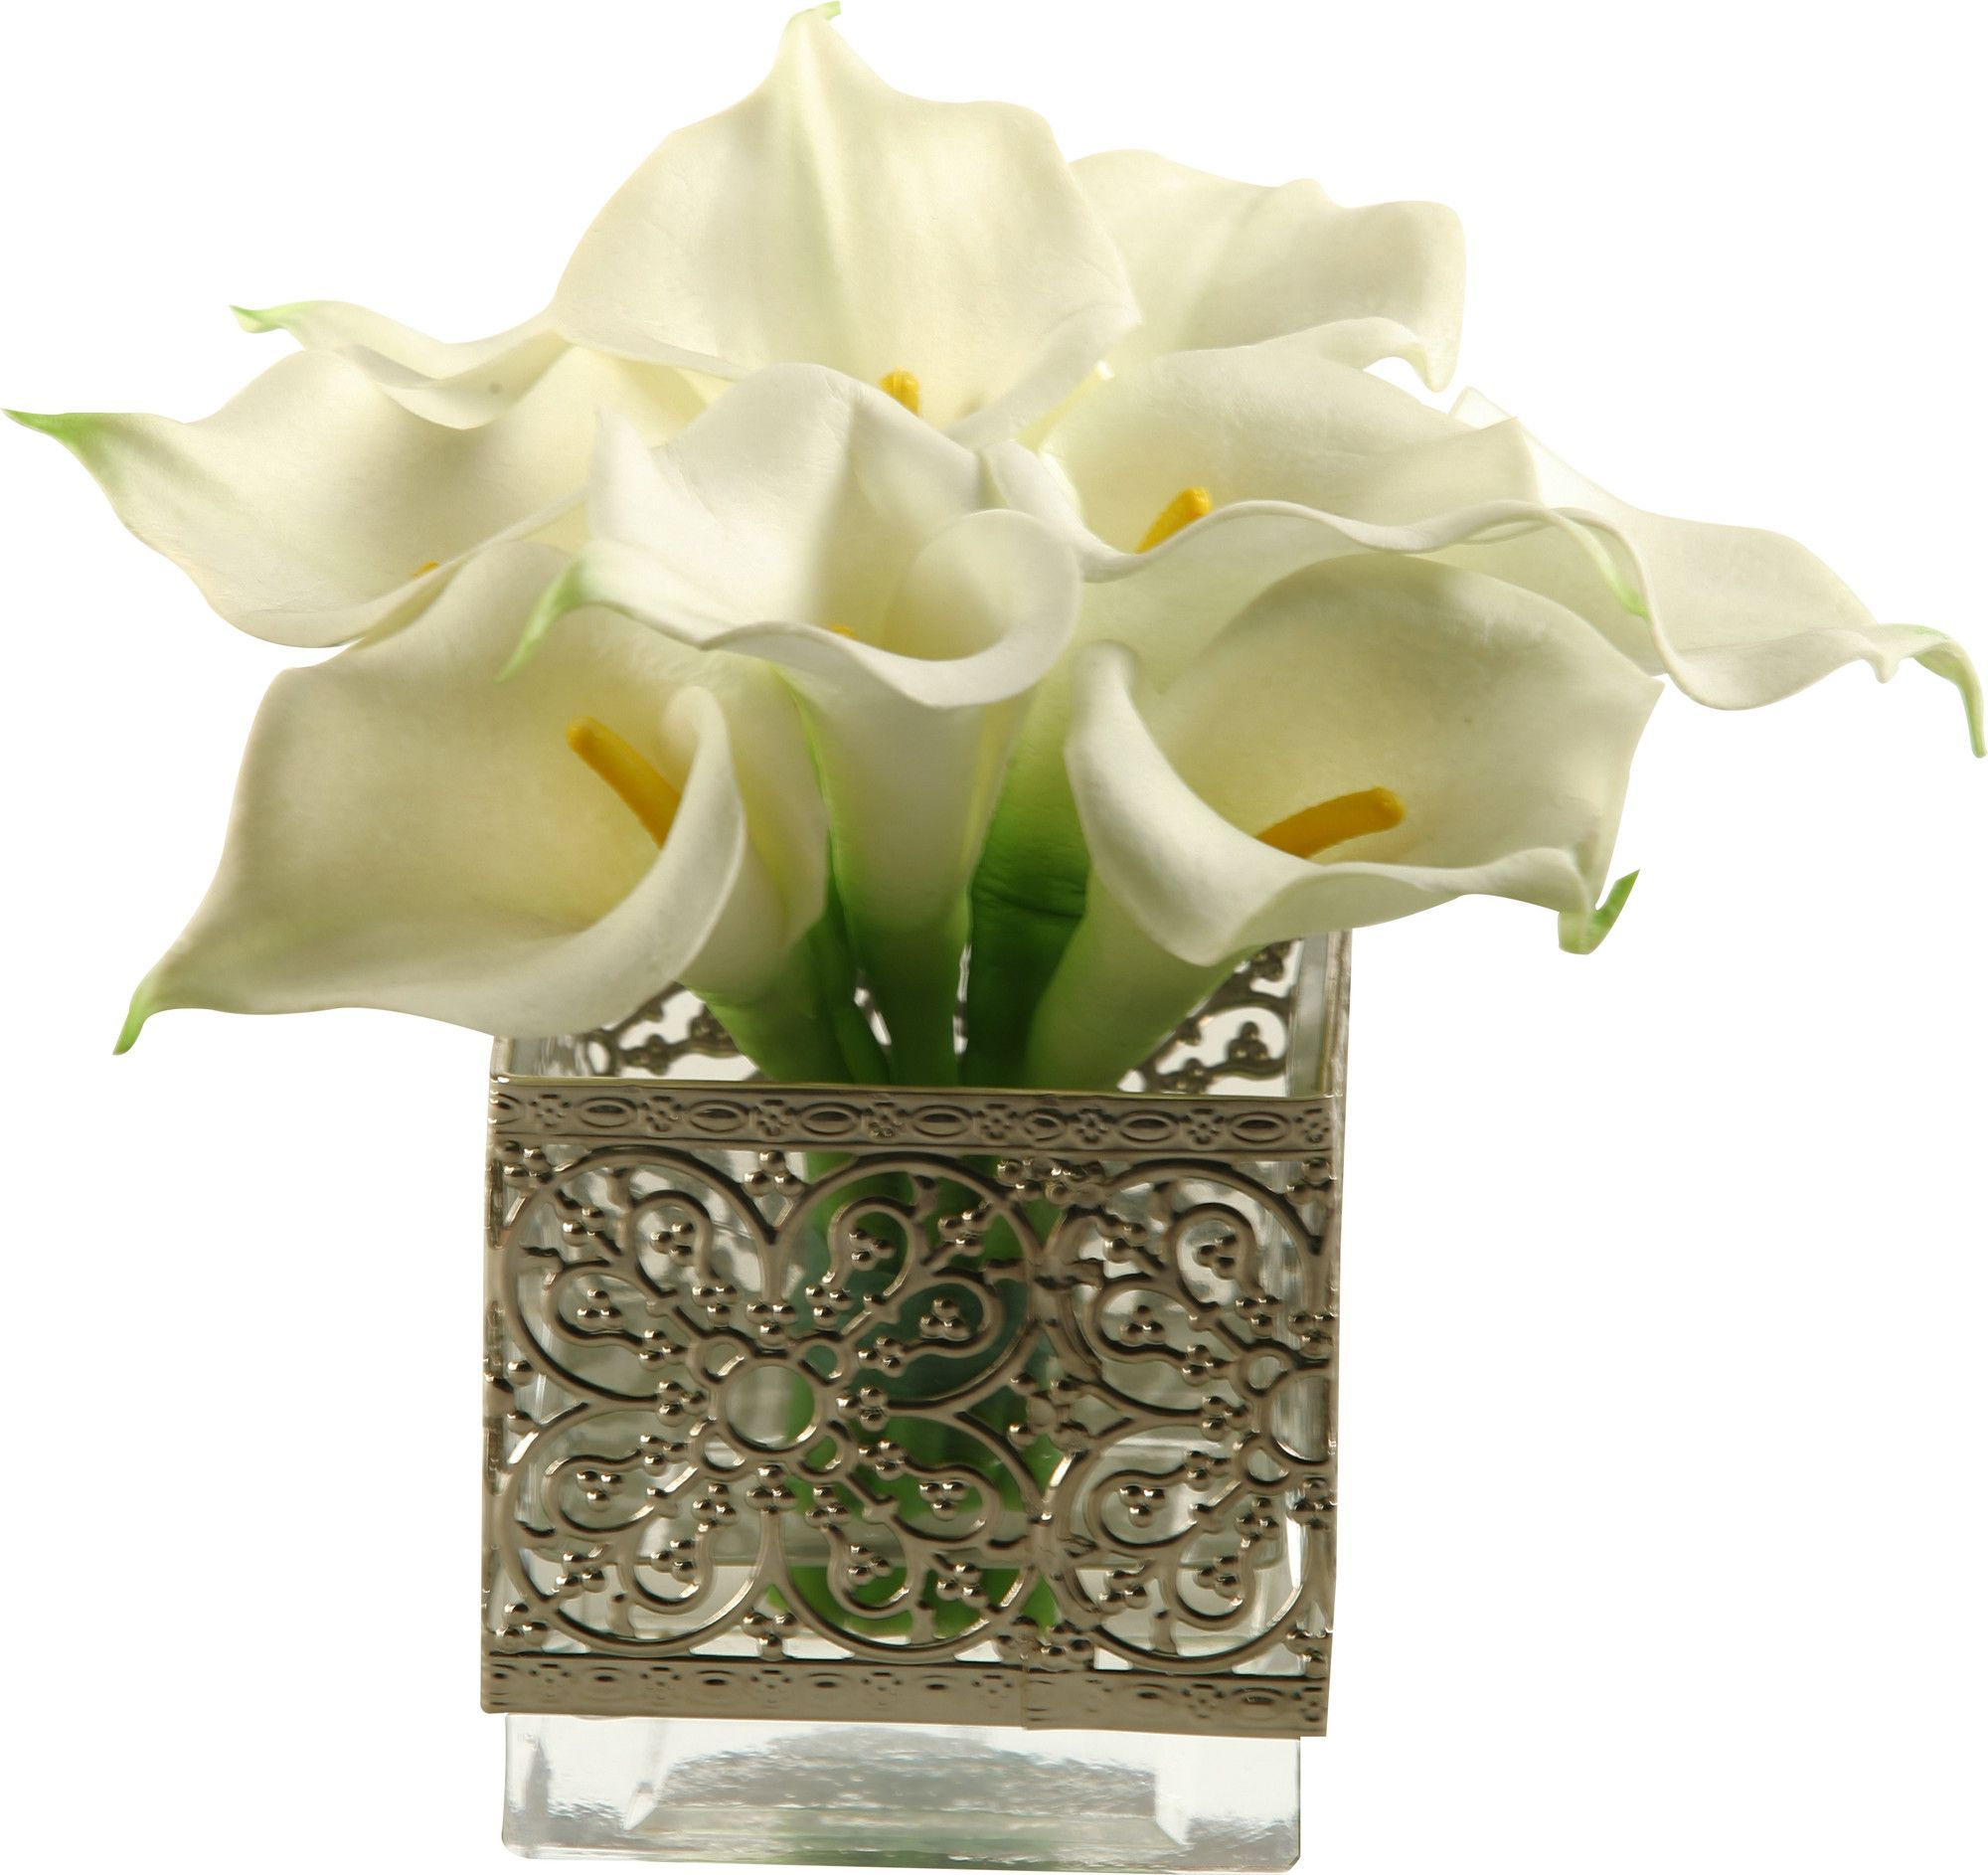 Calla lilies in glass cube vase glass cube and gardens calla lilies in glass cube vase reviewsmspy